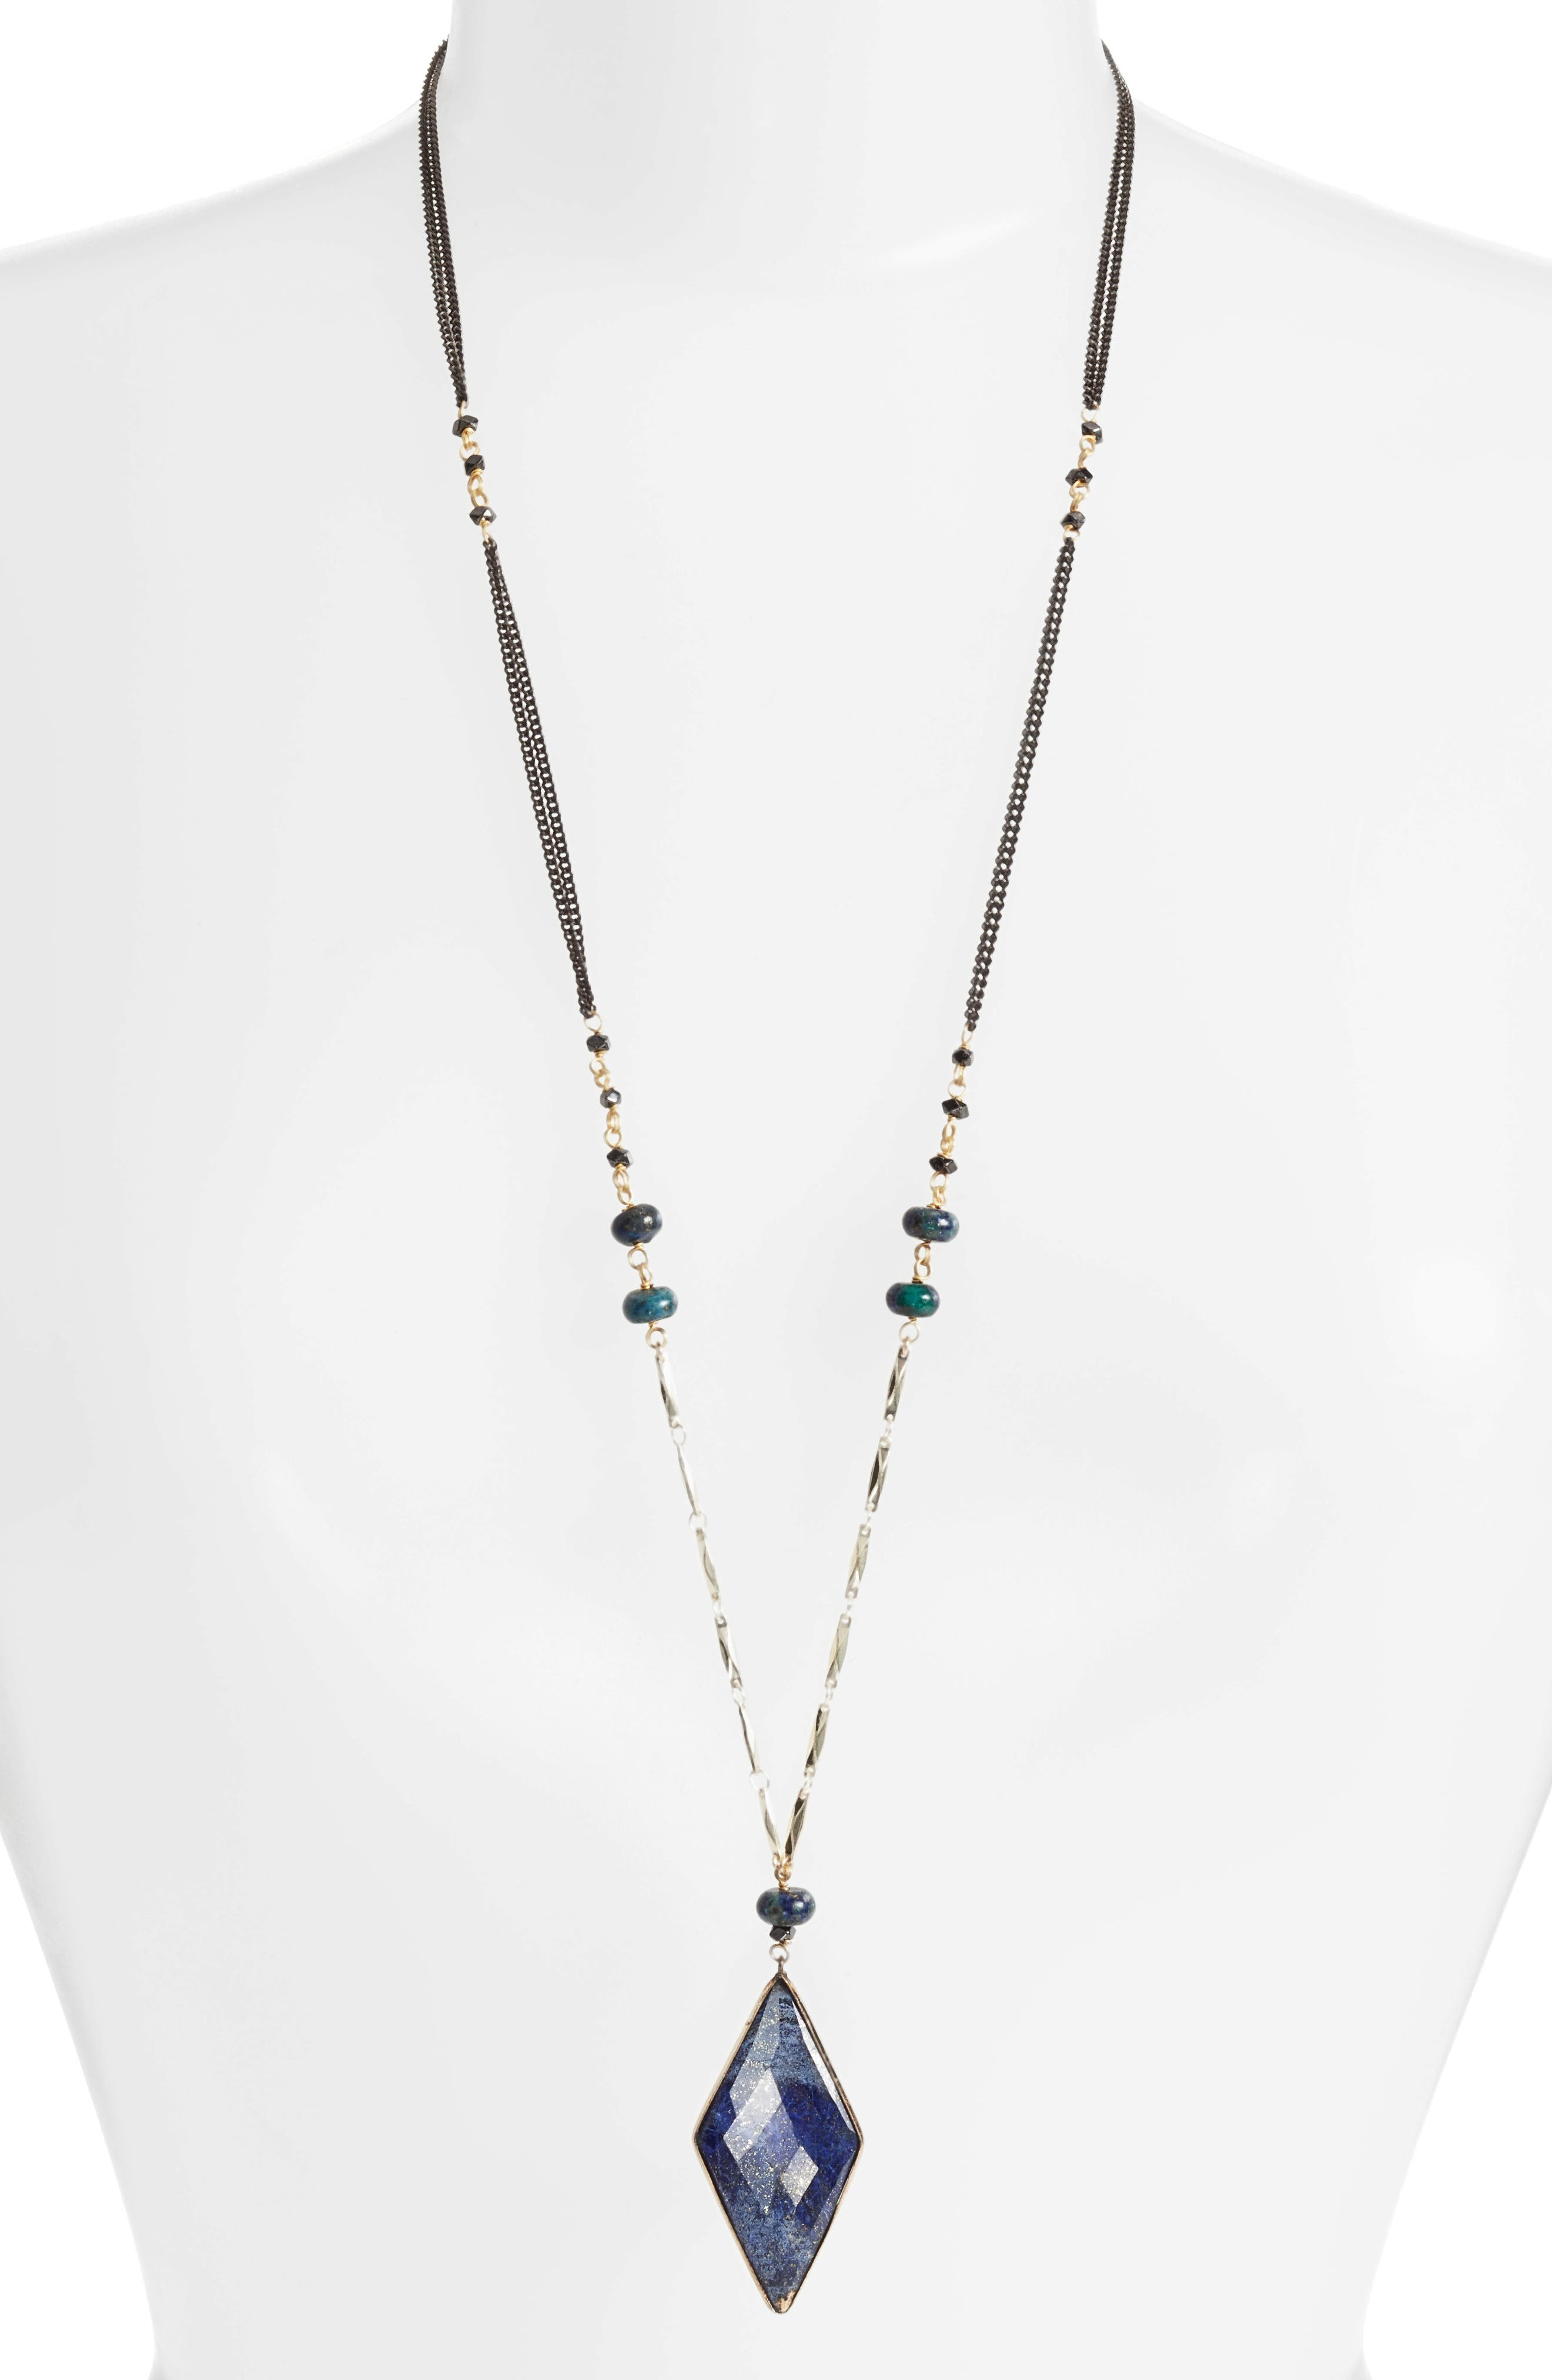 Nakamol Design Chiara Semiprecious Pendant Necklace